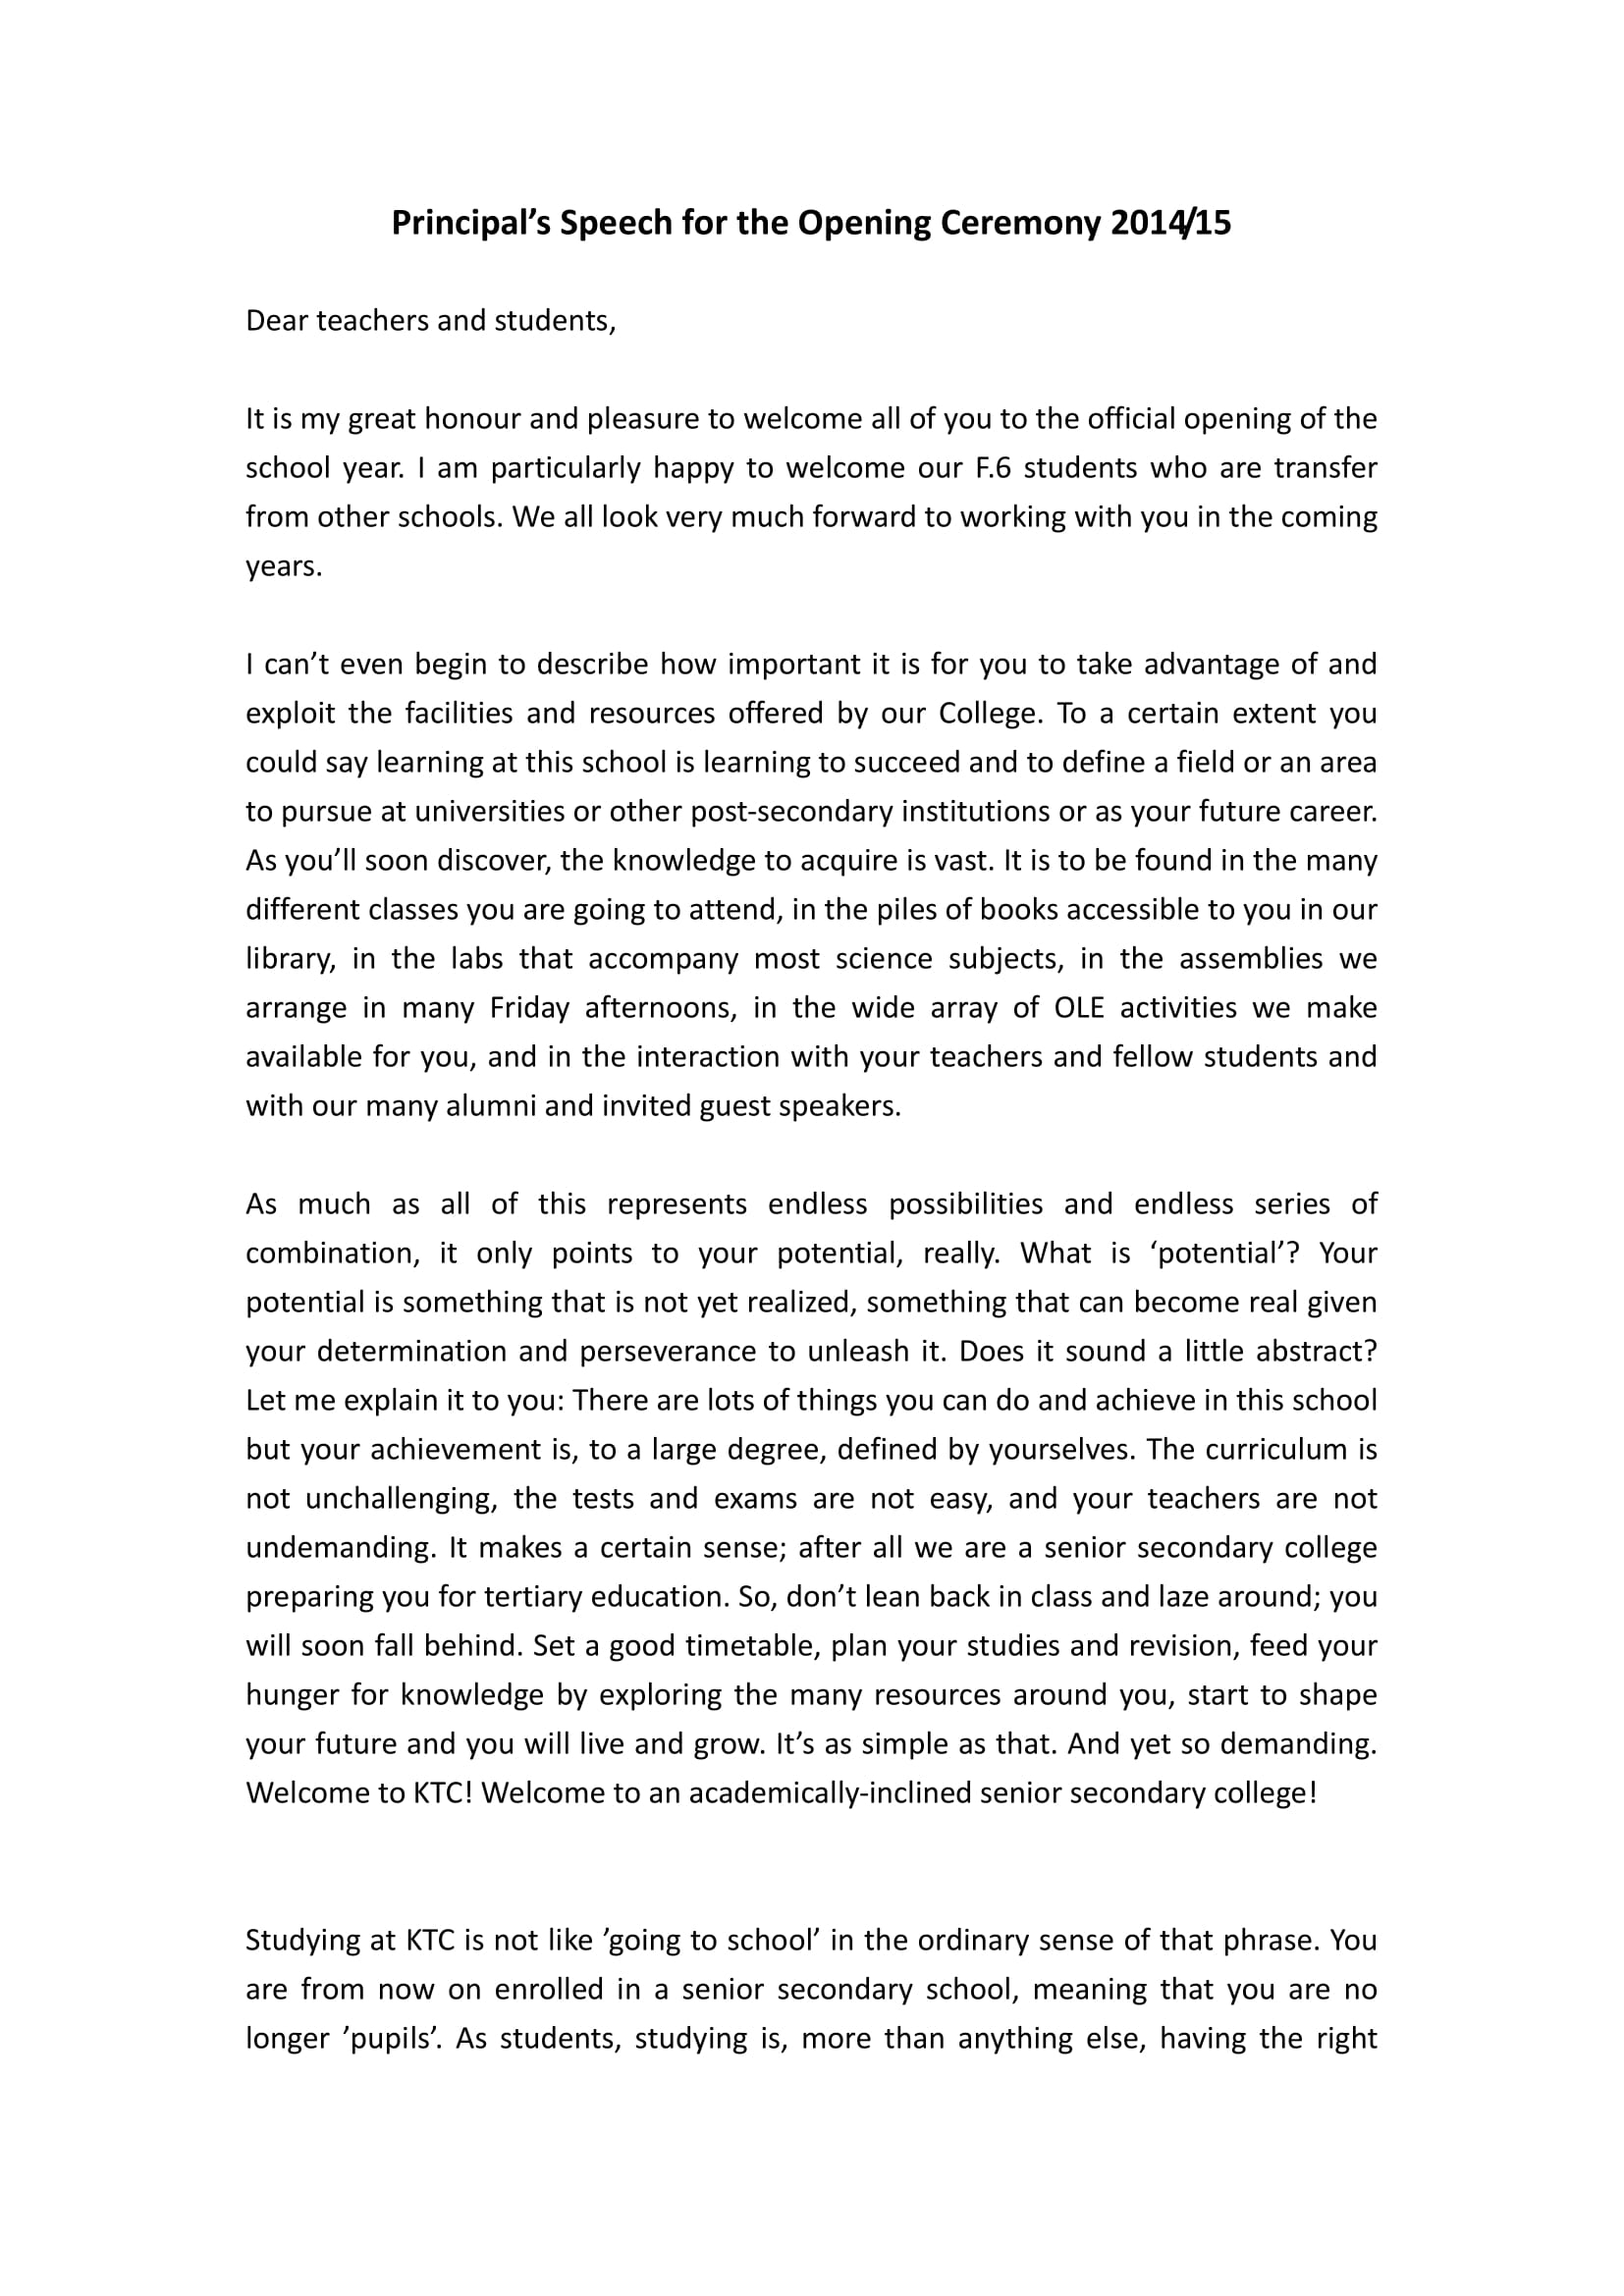 example of an opening speech for mun